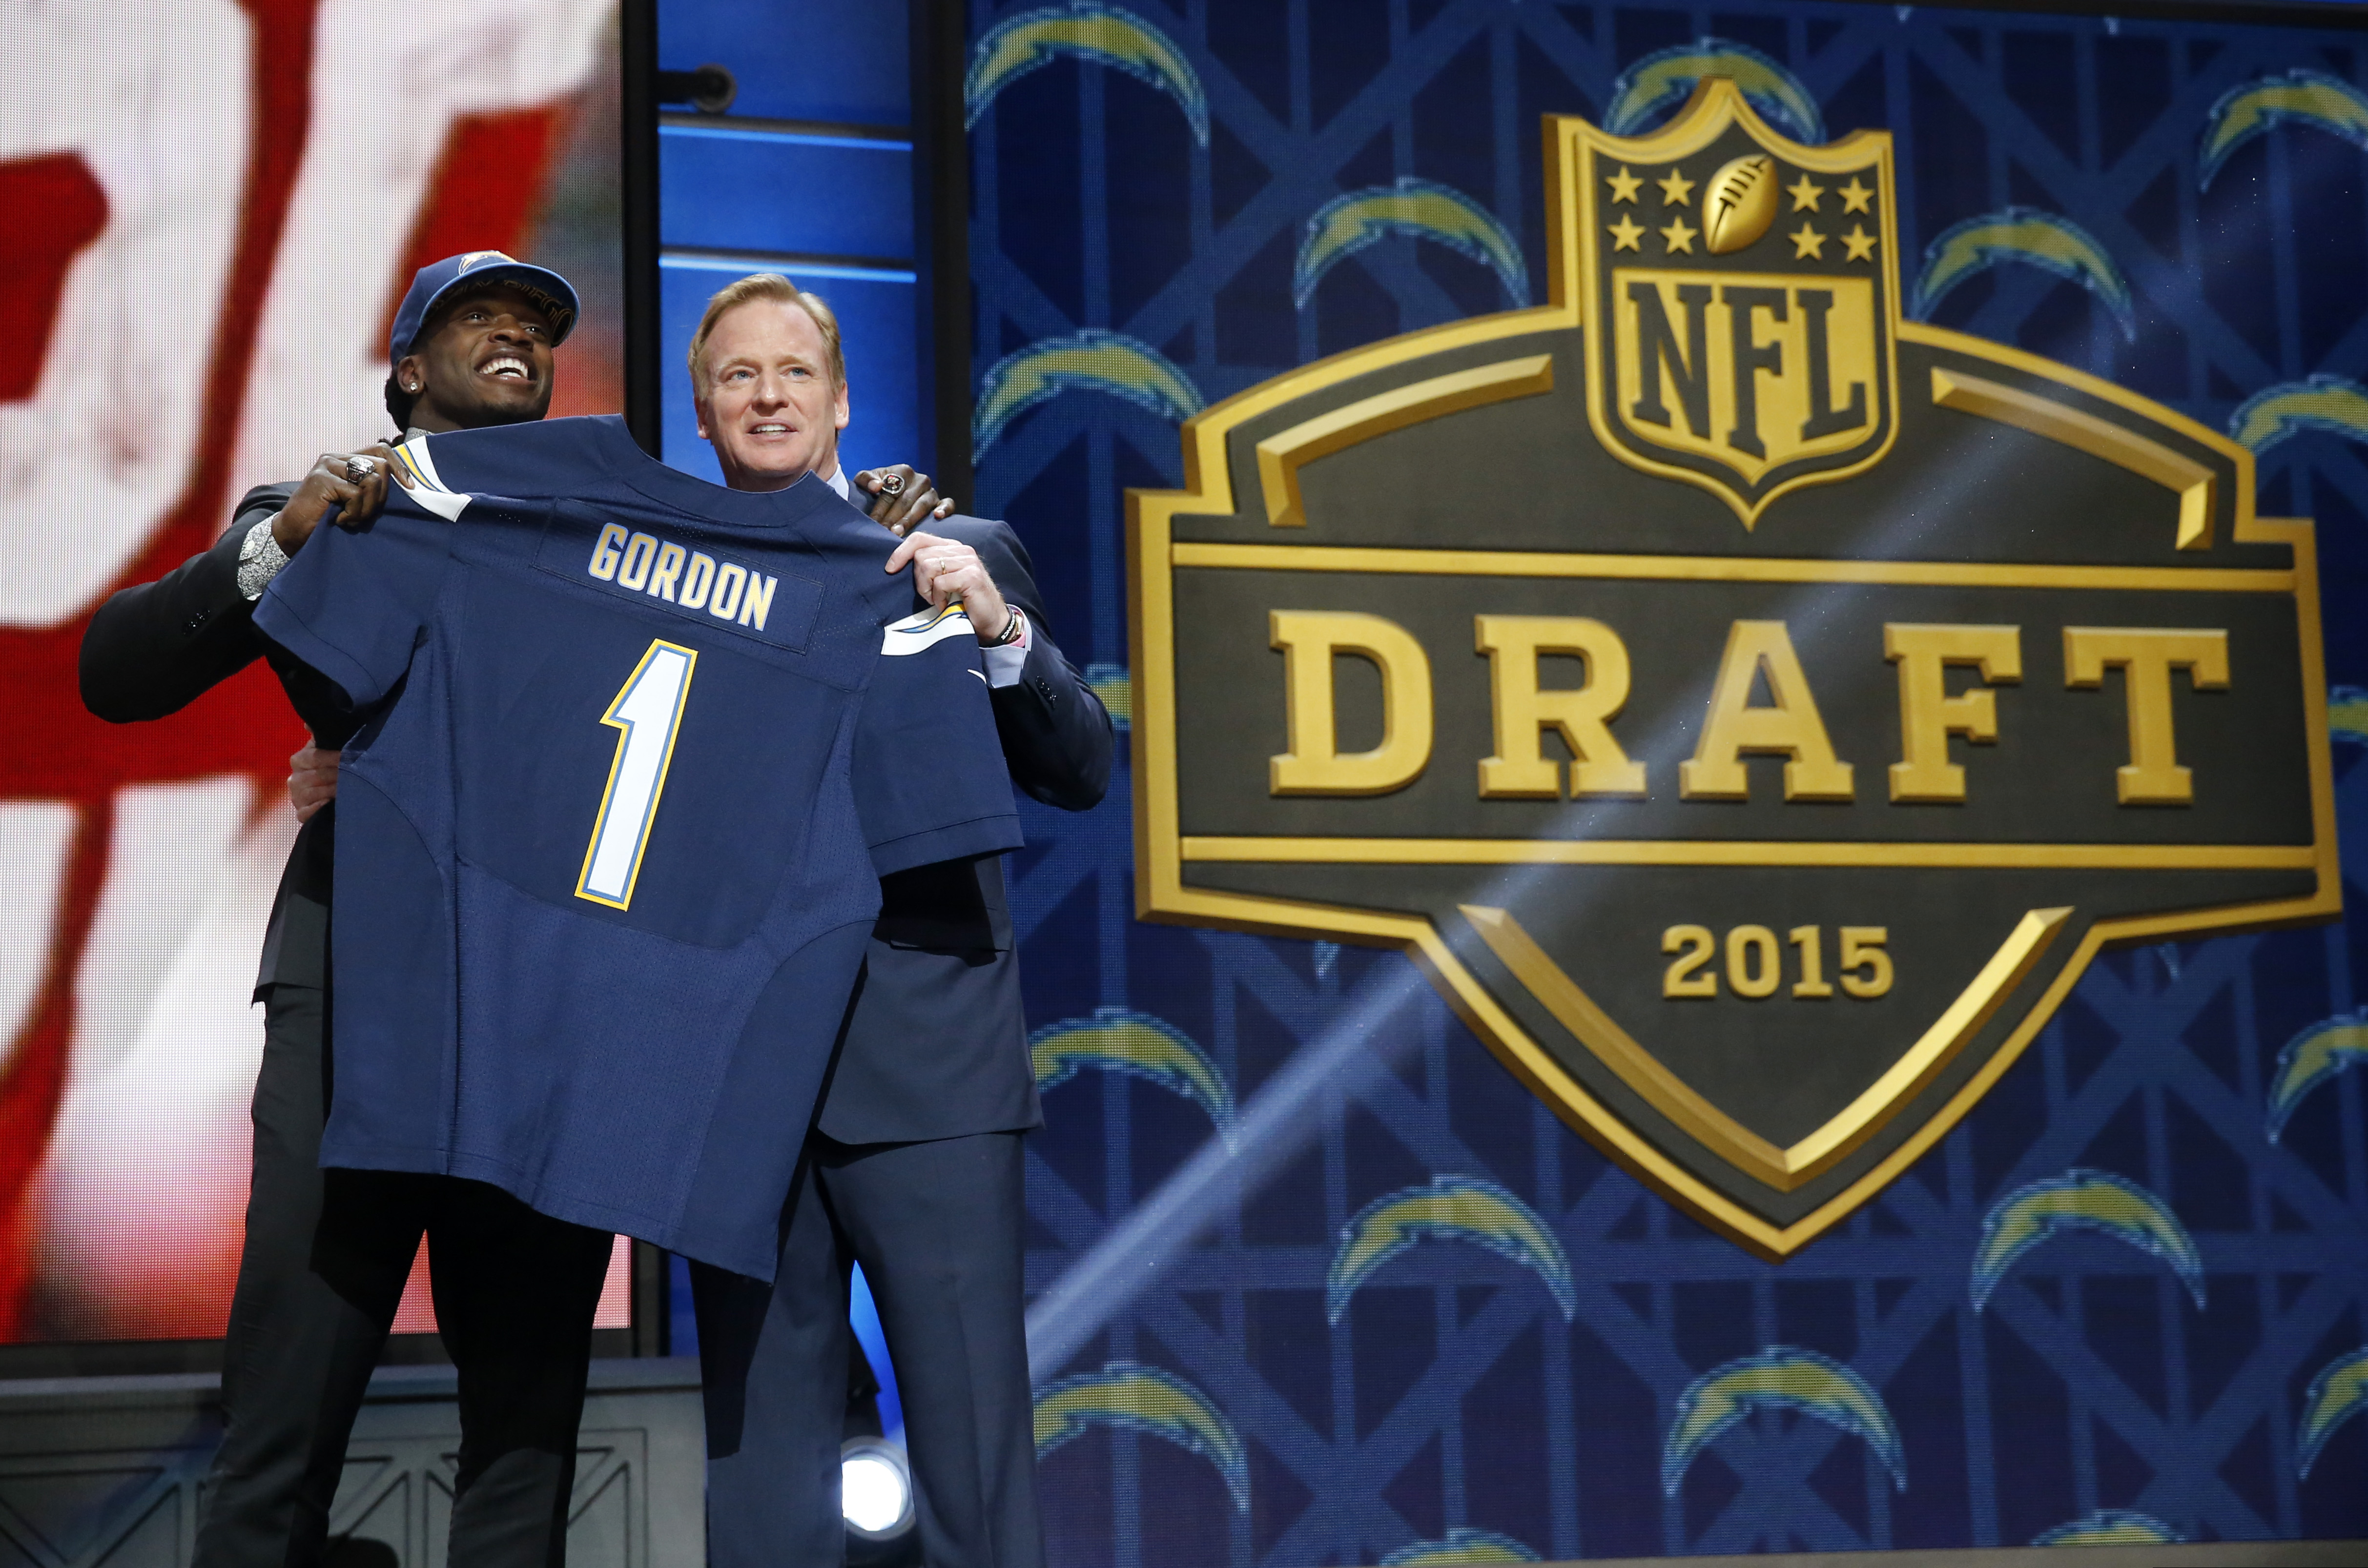 Wisconsin running back Melvin Gordon poses for photos with NFL commissioner Roger Goodell after being selected by the San Diego Chargers as the 15th pick in the first round of the 2015 NFL Draft,  Thursday, April 30, 2015, in Chicago. (AP Photo/Charles Re